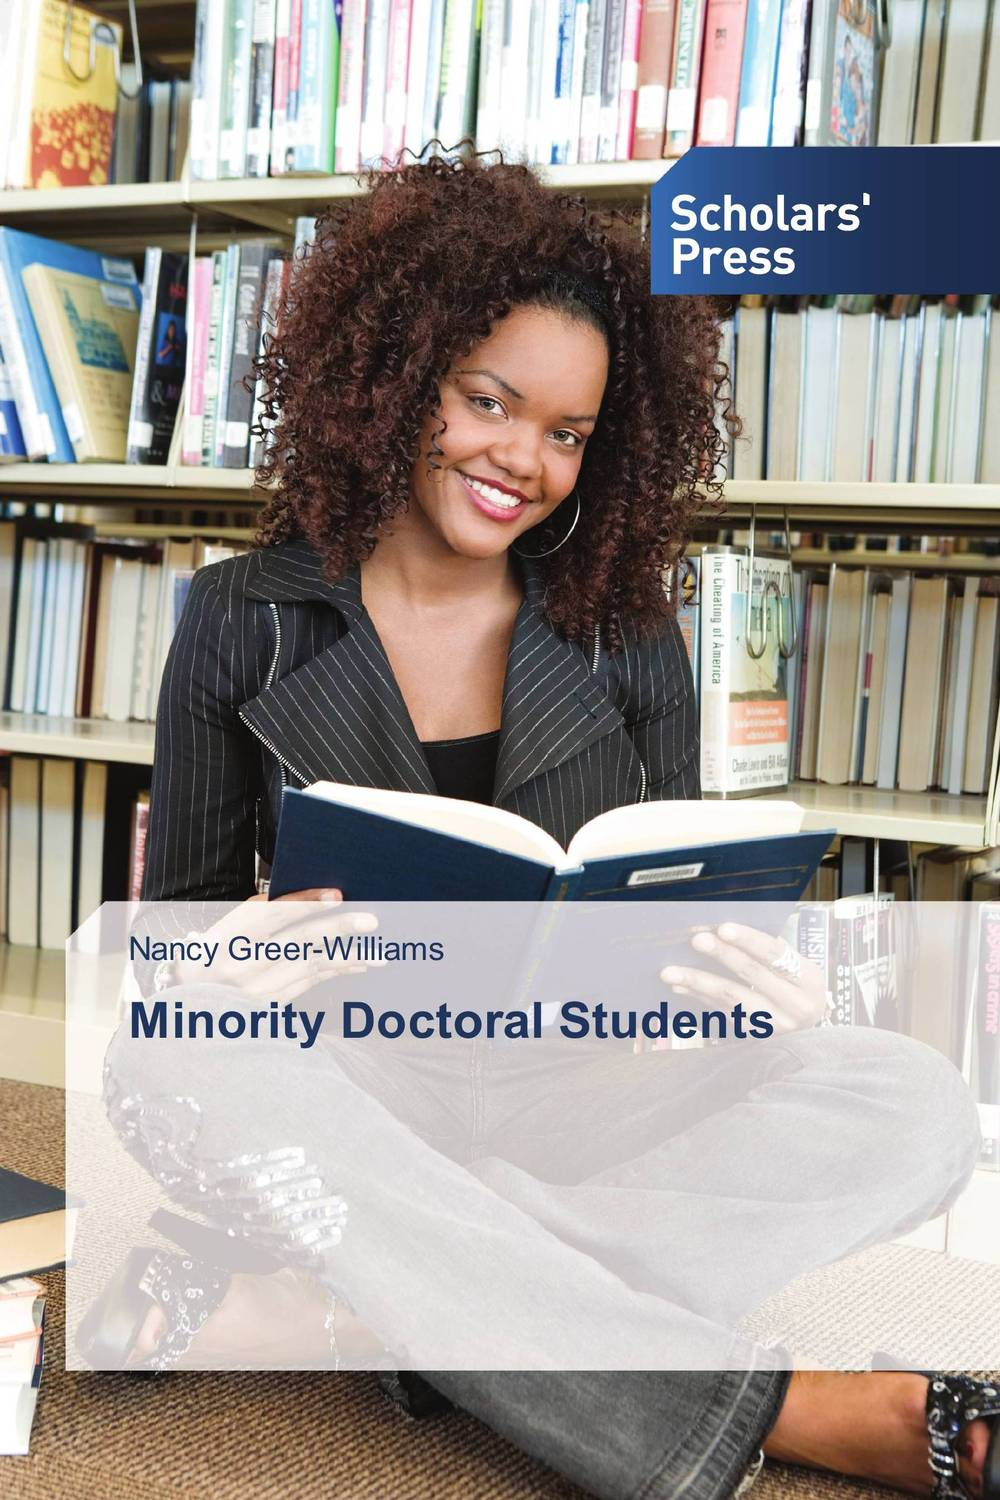 Minority Doctoral Students